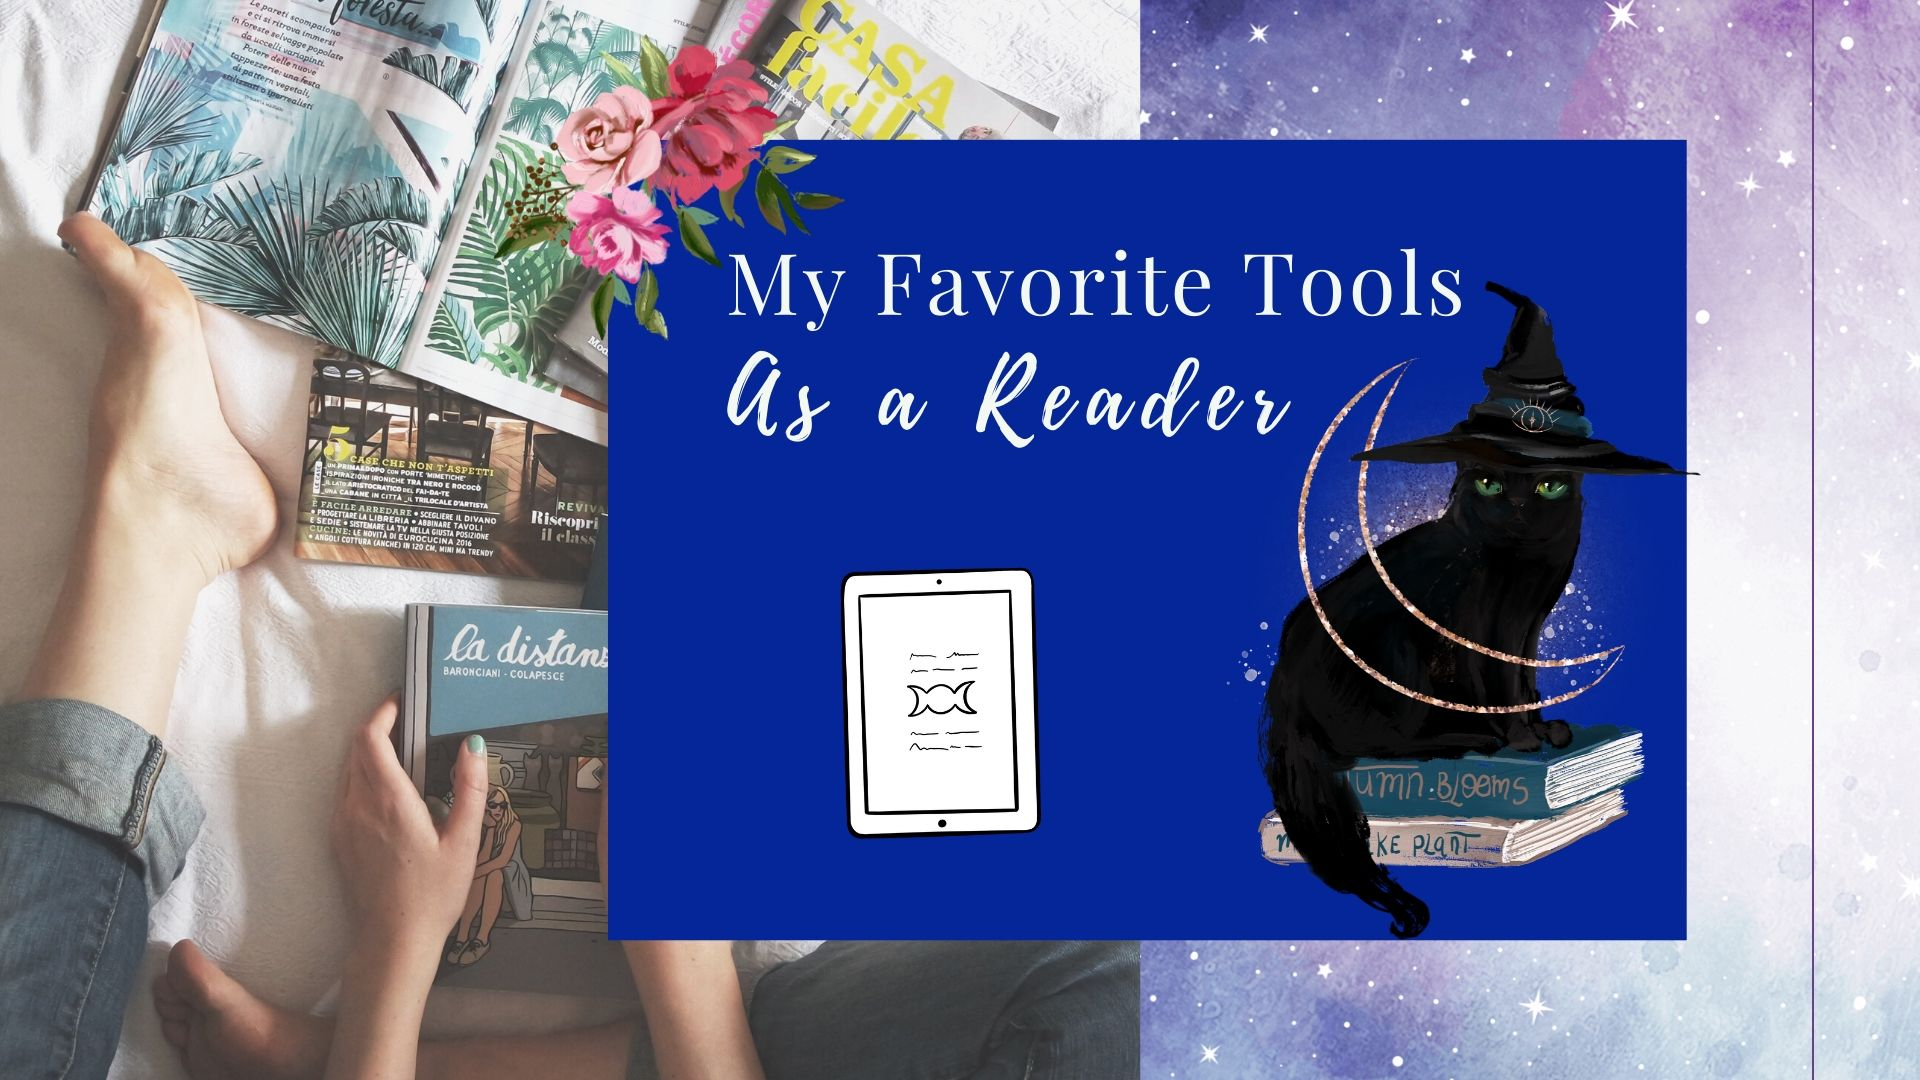 My Favorite Tools as a Reader